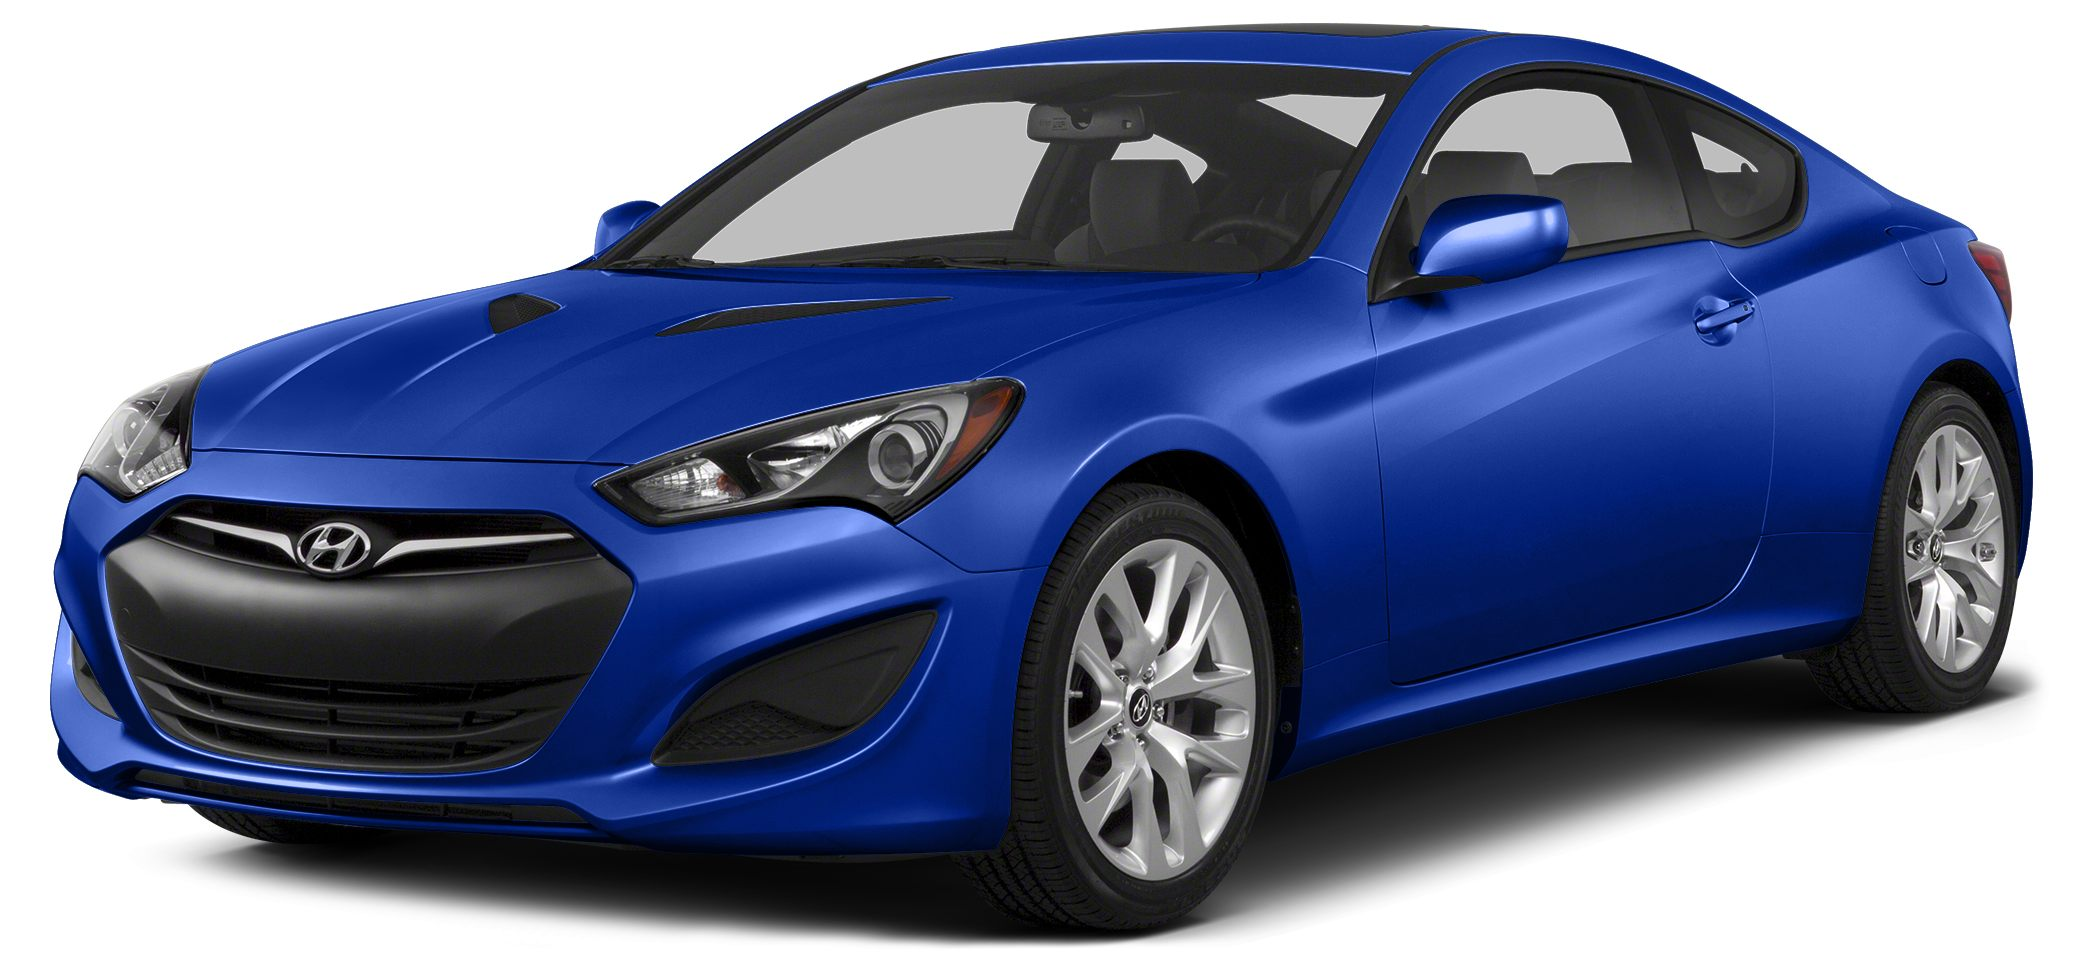 2014 Hyundai Genesis Coupe 38 Ultimate CARFAX 1-Owner LOW MILES - 6404 REDUCED FROM 28988